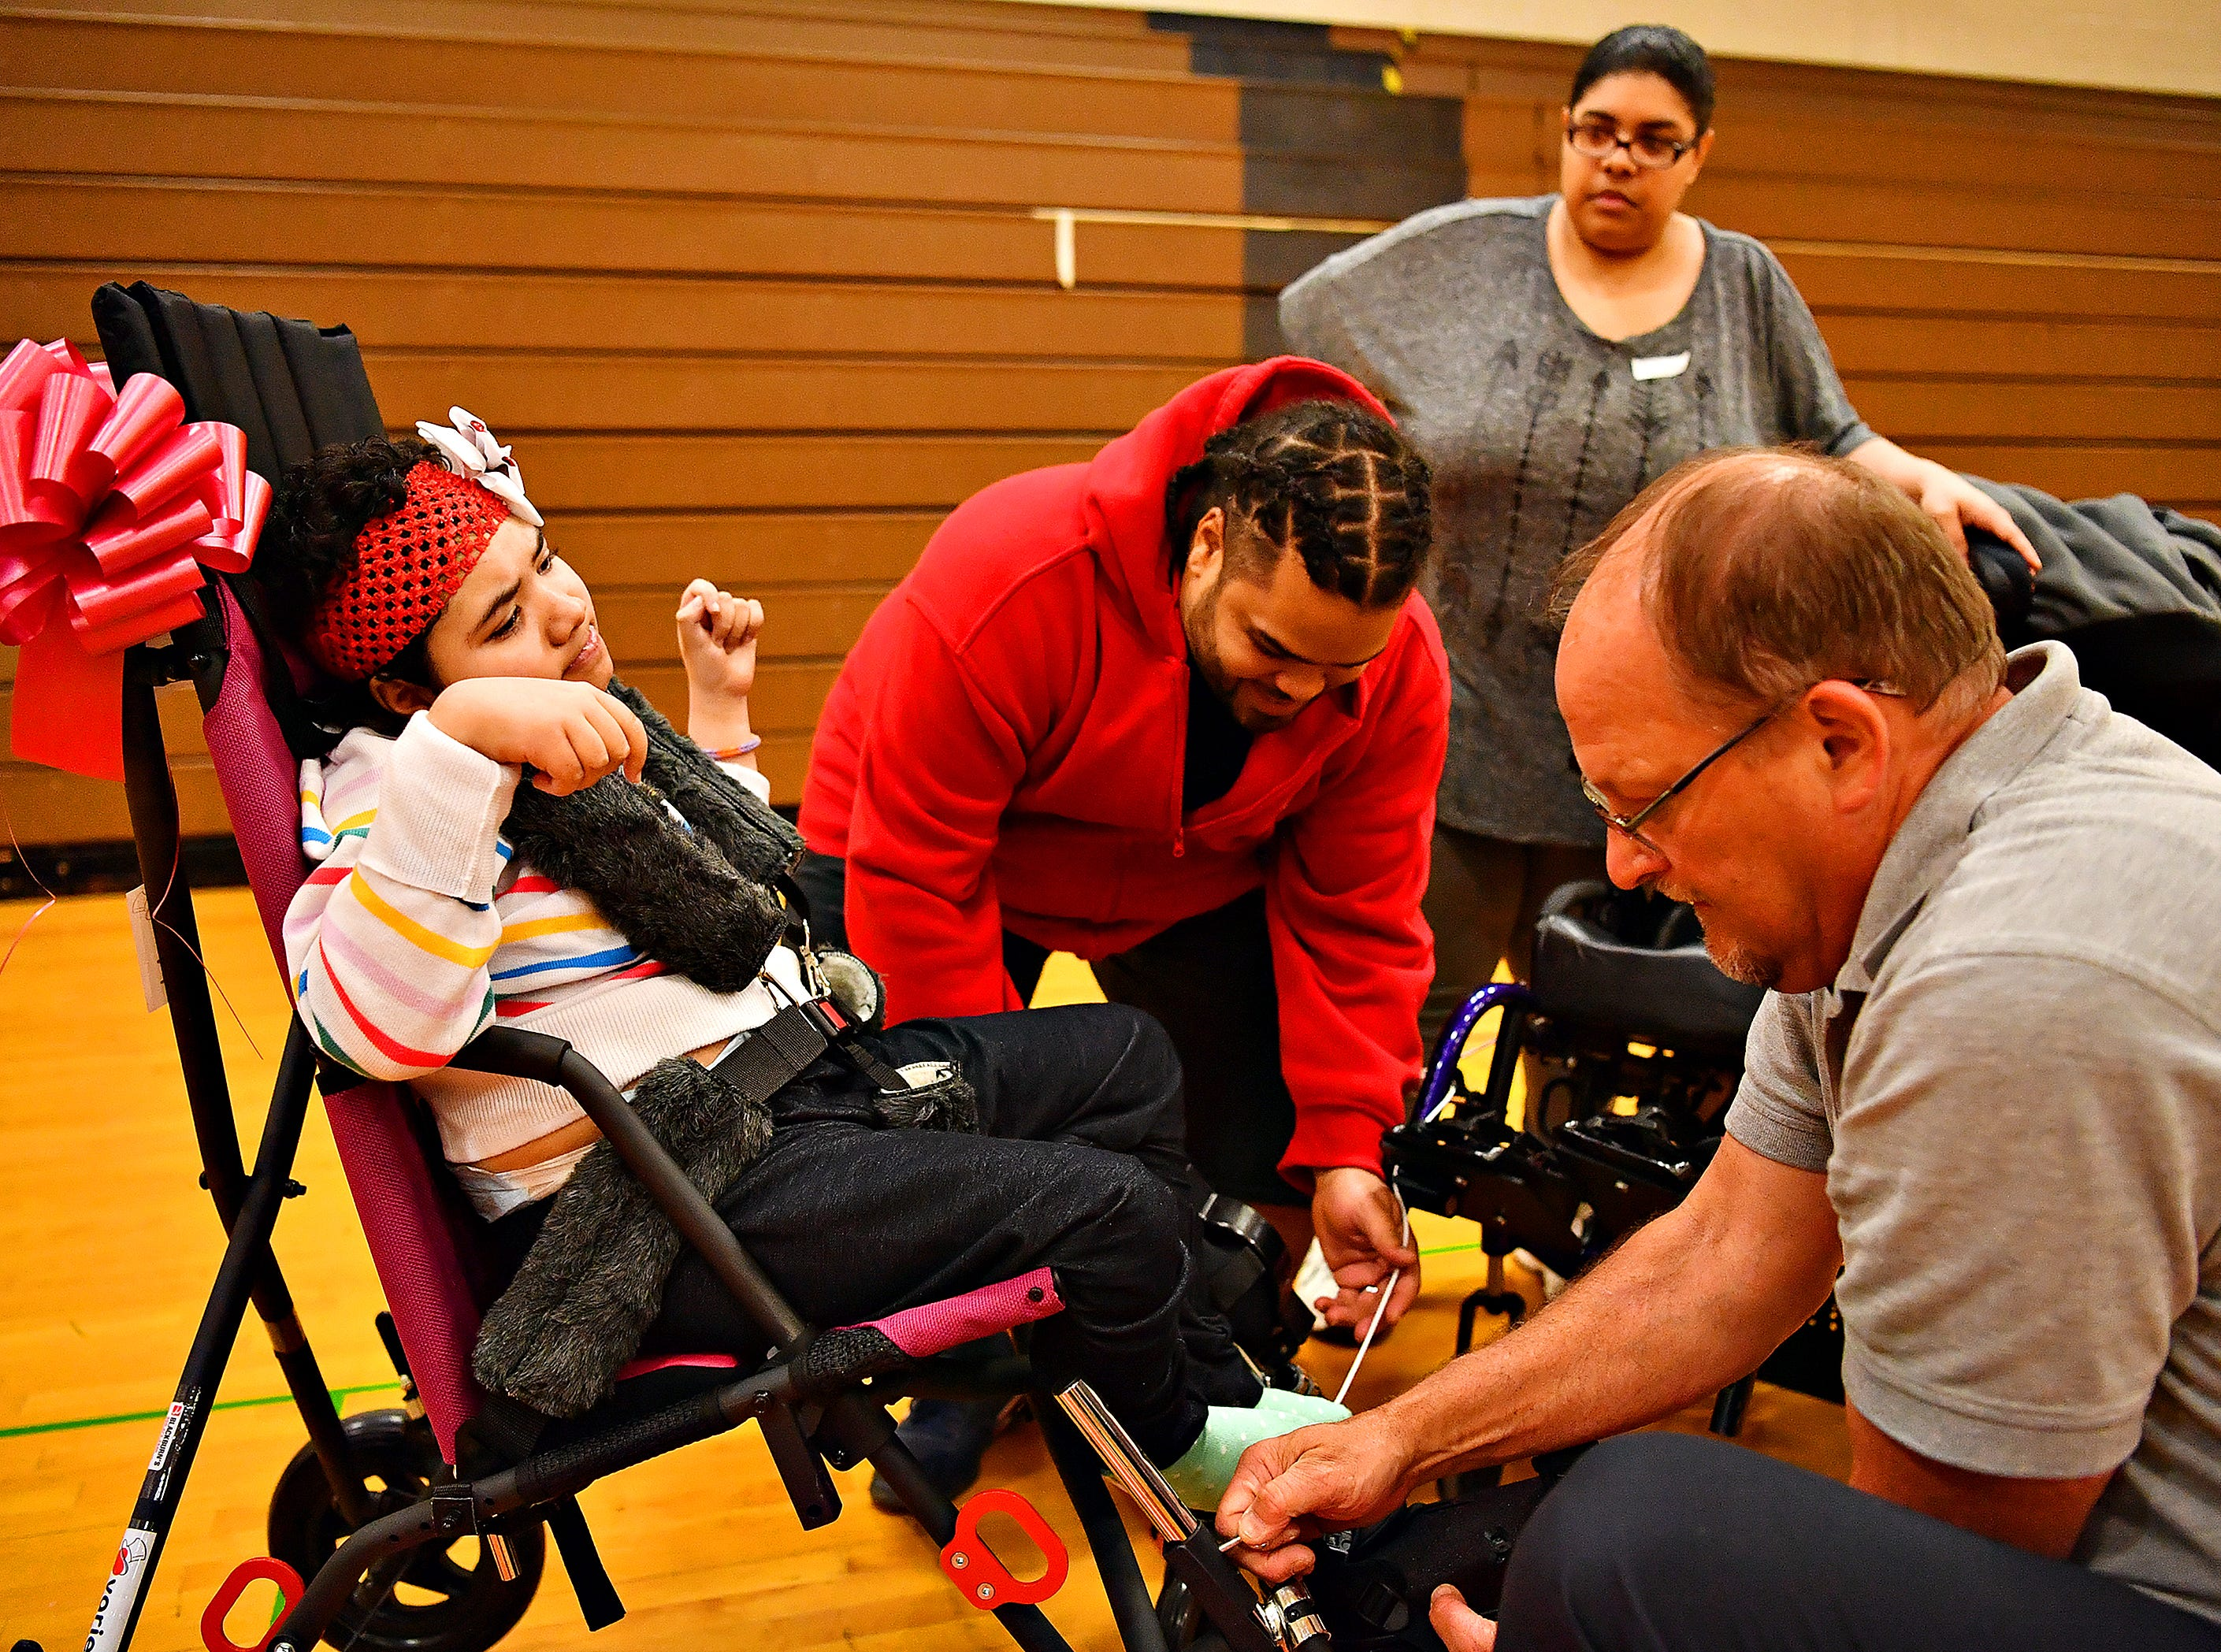 From right in front, Randy Prunty, of Blackburn's, shows Franciso Rivera how to secure his daughter Maydaly's Rivera, 11, in her new adaptable stroller while Maydaly's' mother Melissa Torres looks on as Variety, the Children's Charity, based in Pittsburg, presents adaptable equipment and communication devices to children with disabilities at York Learning Center in North York, Tuesday, May 14, 2019. Dawn J. Sagert photo